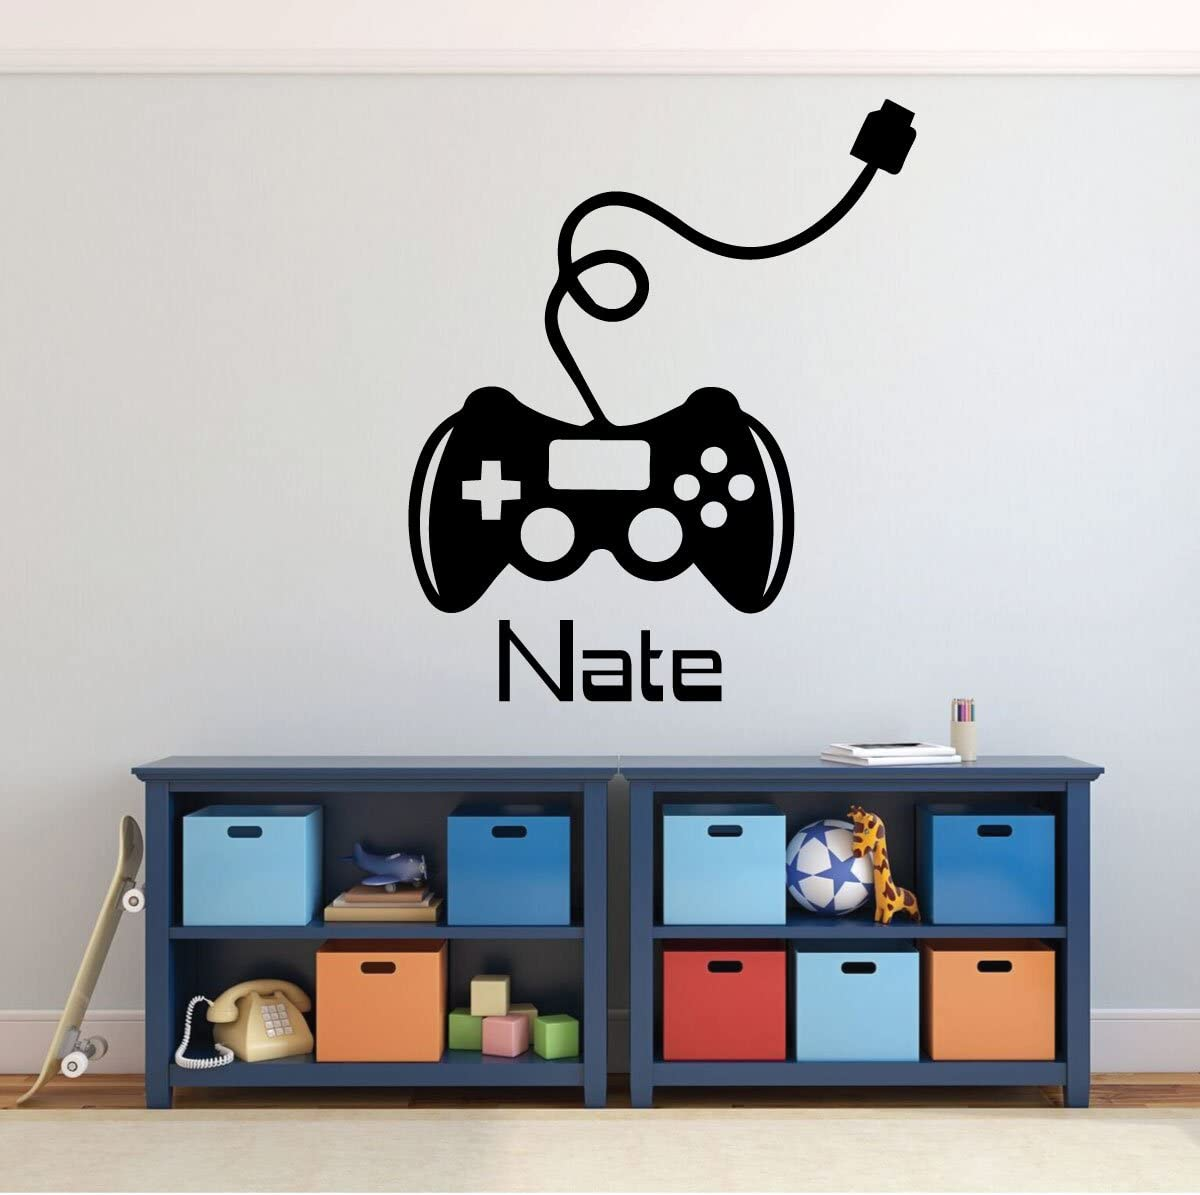 Game Room Wall Decor - Gamer Controller with Personalized Name Vinyl Decal Stickers for Home in Teens and Kids, Boys Bedroom, Playroom or Man Cave - Custom Sizes and Colors Complement any Living Space